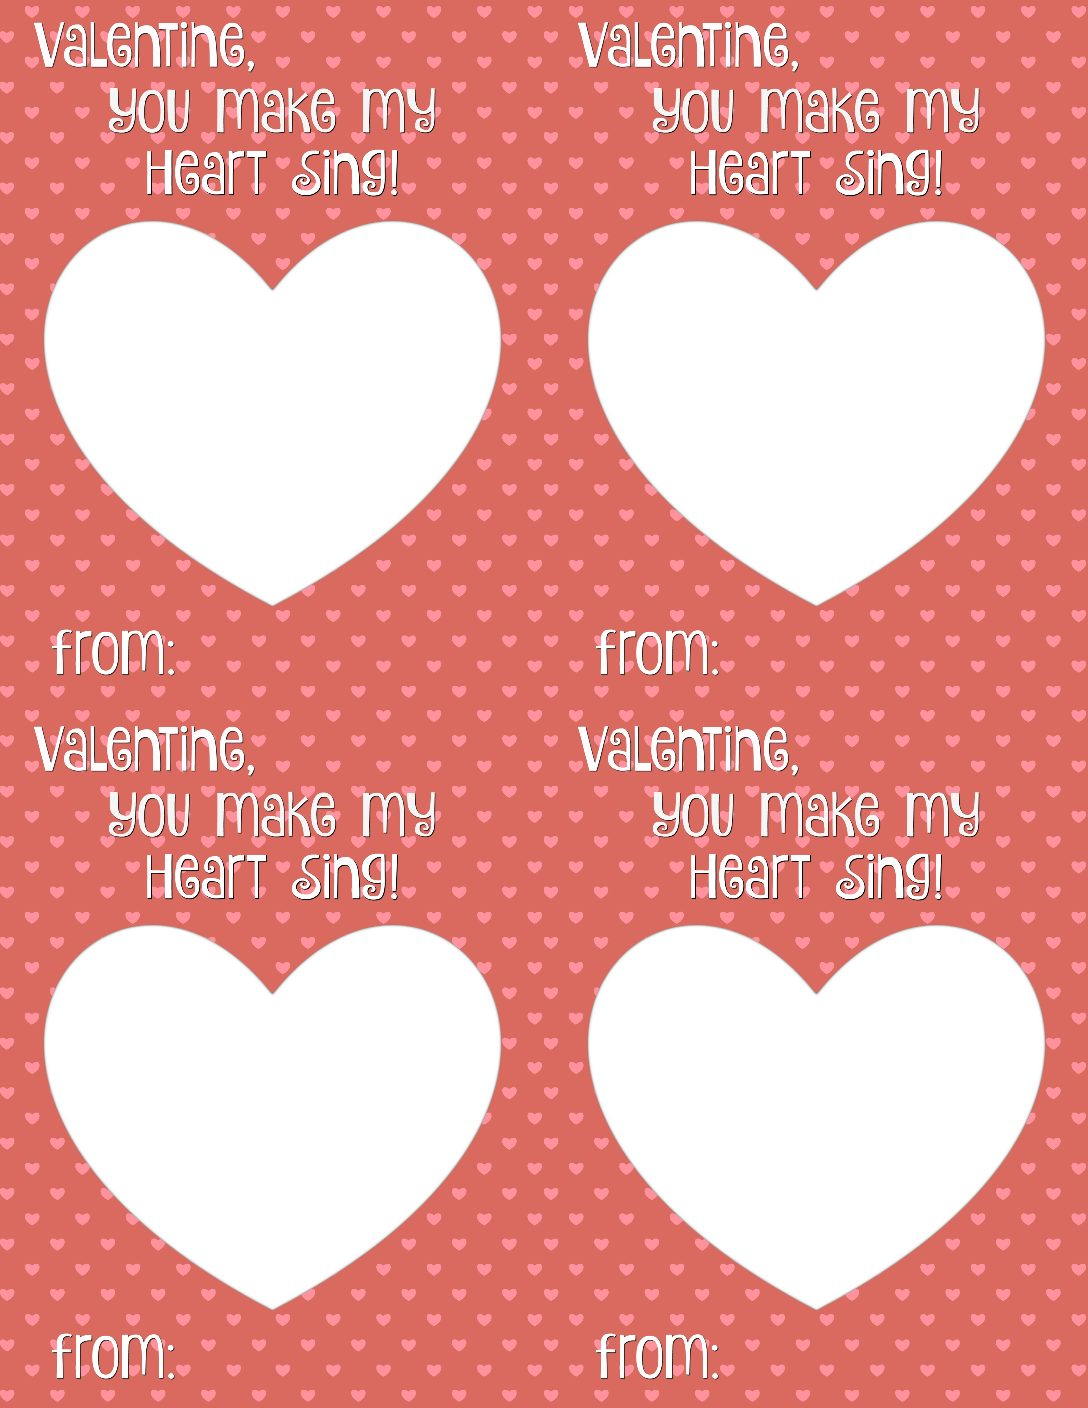 photo relating to Valentines Cards Printable identify On your own Generate My Center Sing Valentine Card Printable - Smashed